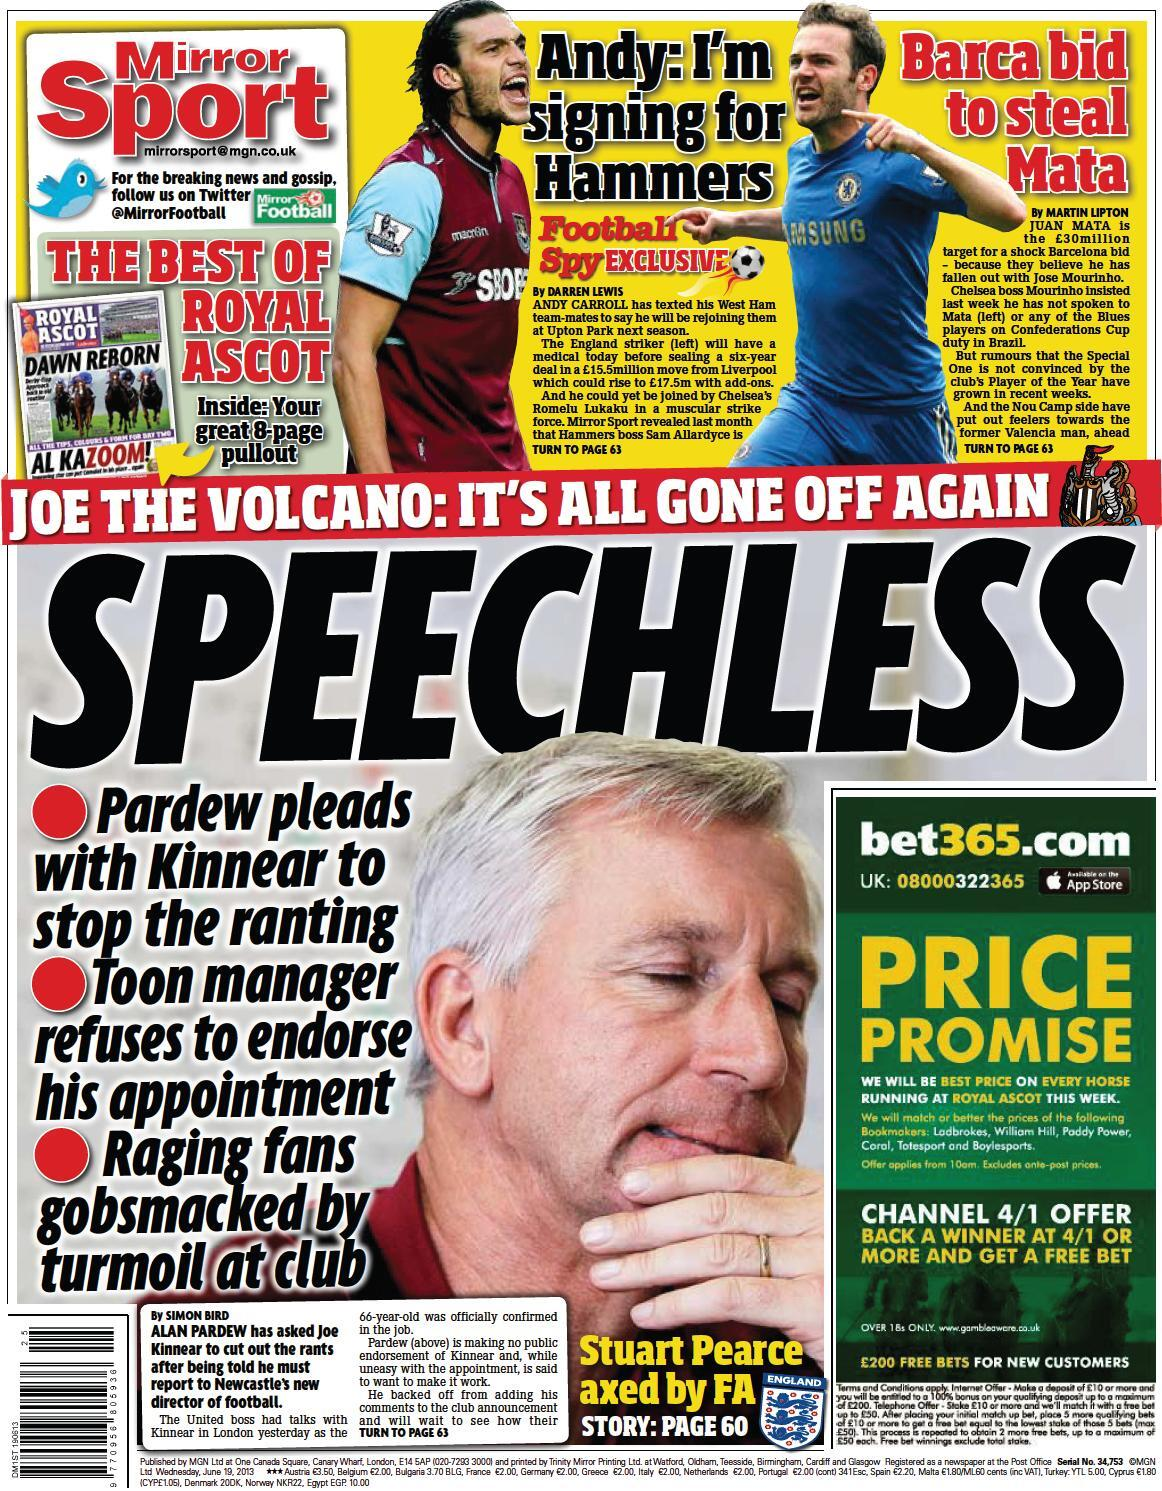 Newcastle in meltdown after Kinnear appointment, Matas Chelsea contract dispute & West Ham land £15.5m Carroll